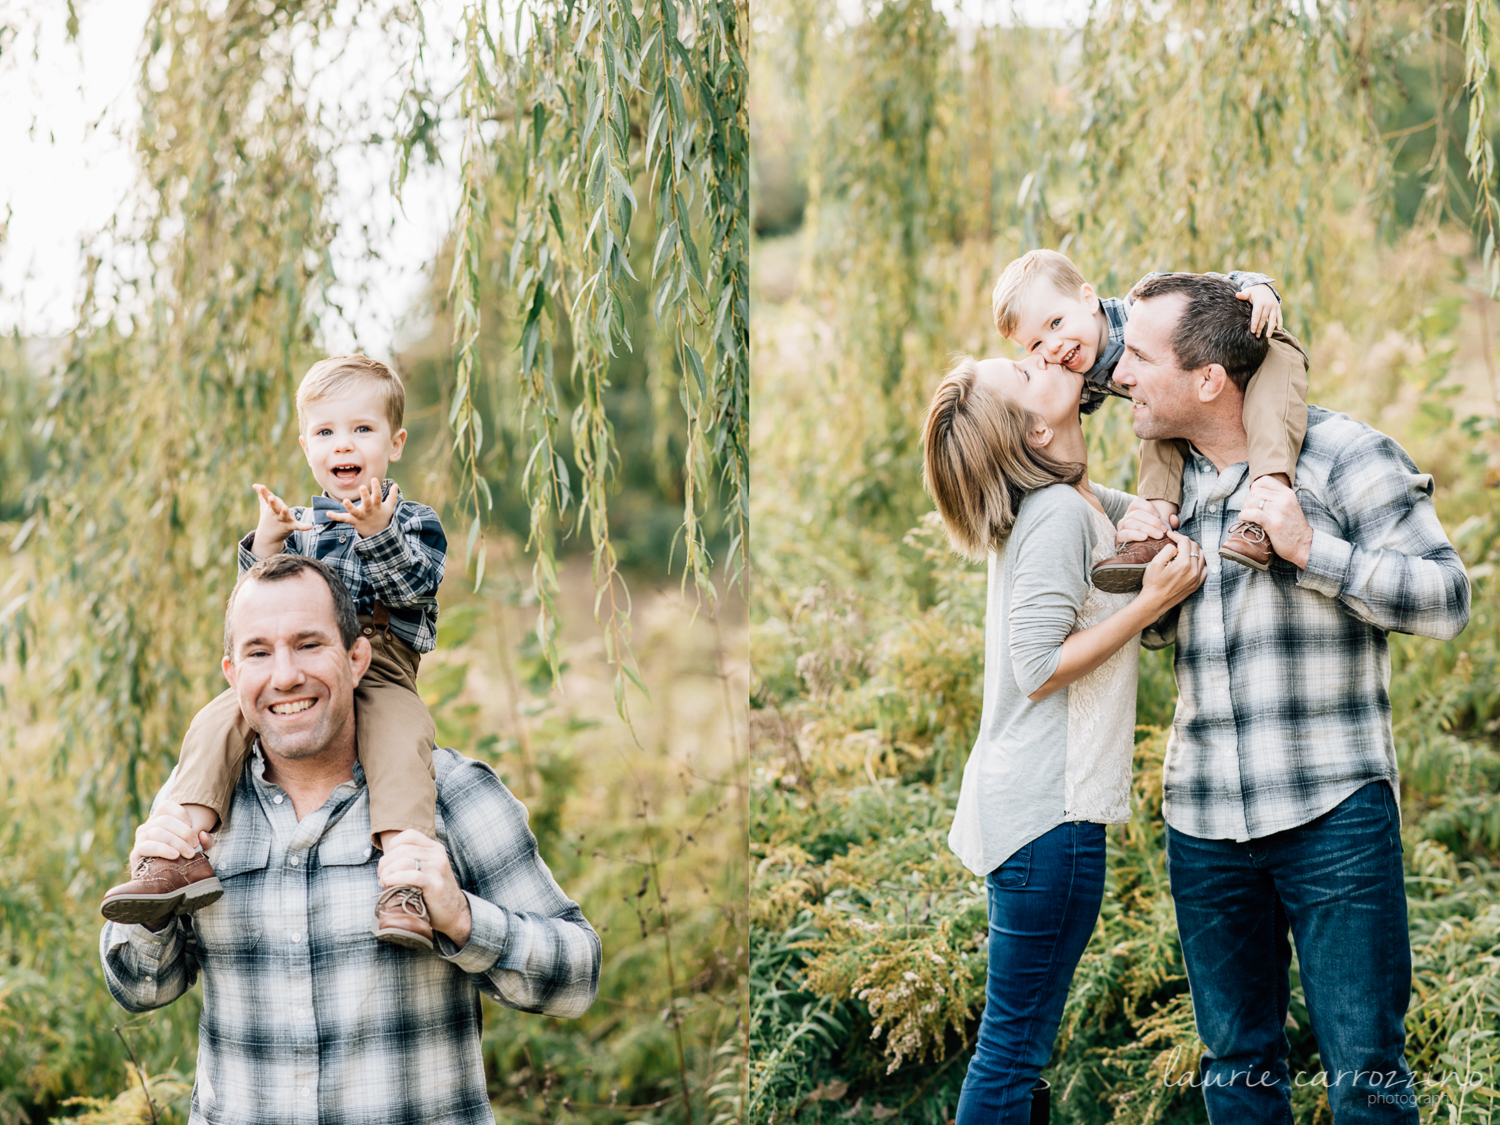 haverfordfamilysession06-2.jpg